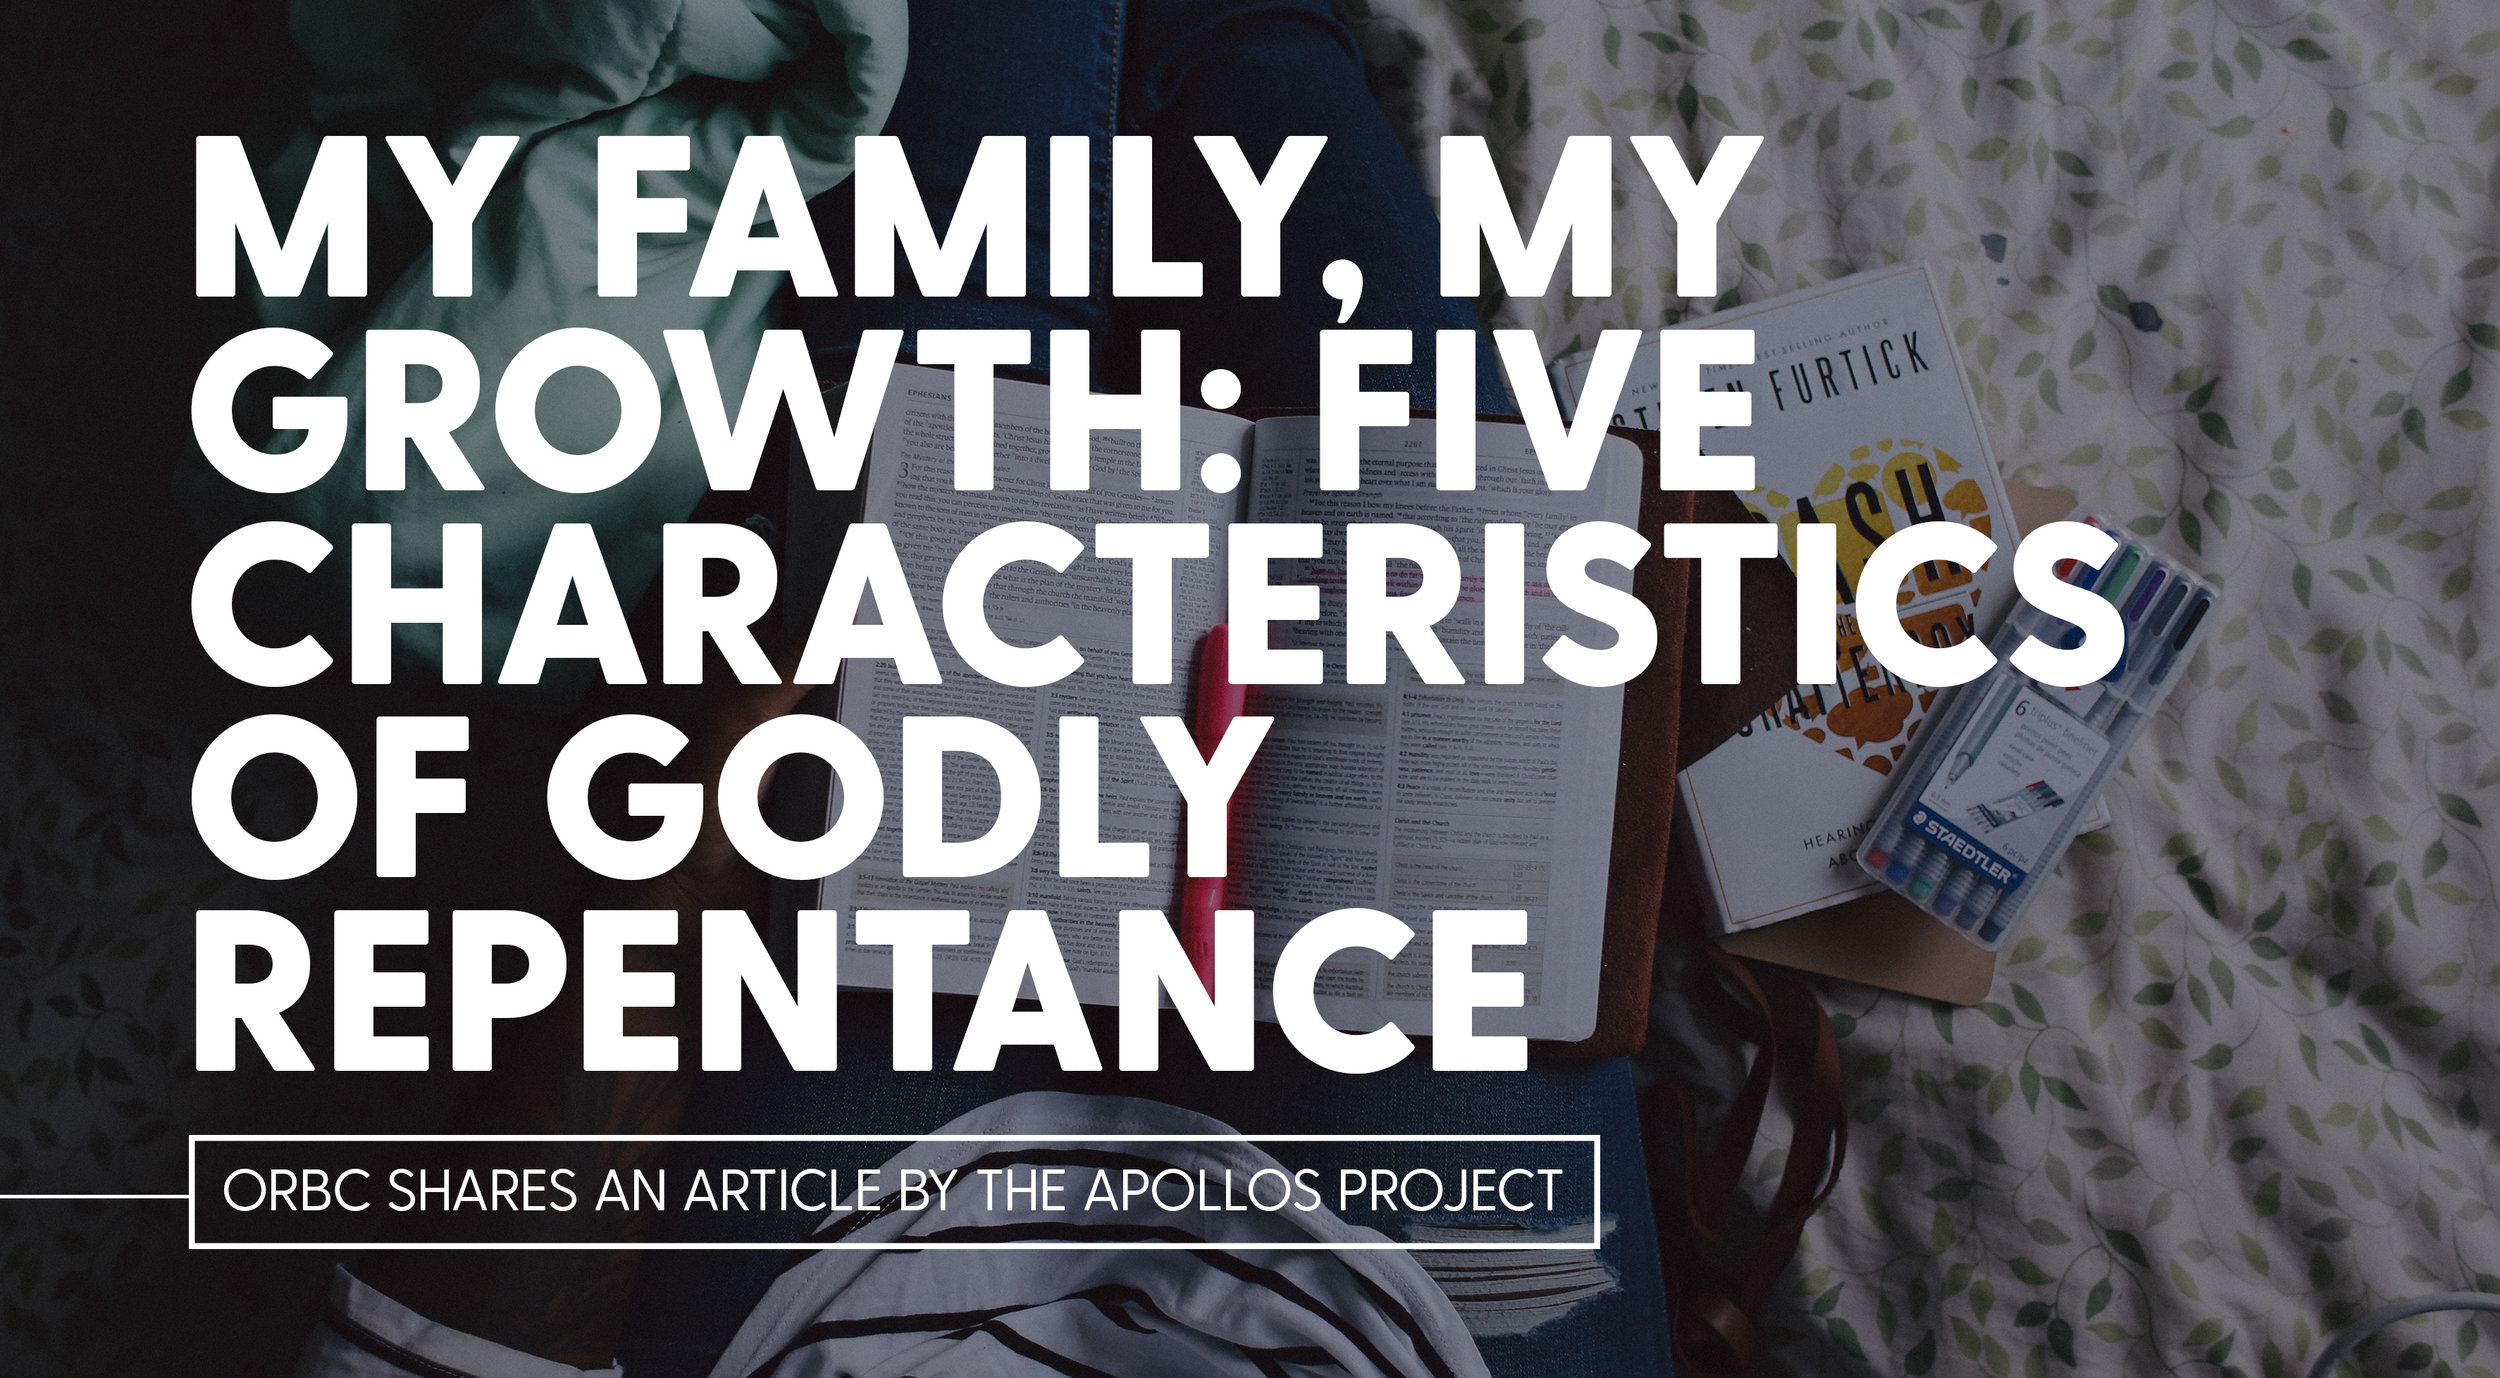 My Family, My Growth- Five Characteristics of Godly Repentance.jpg